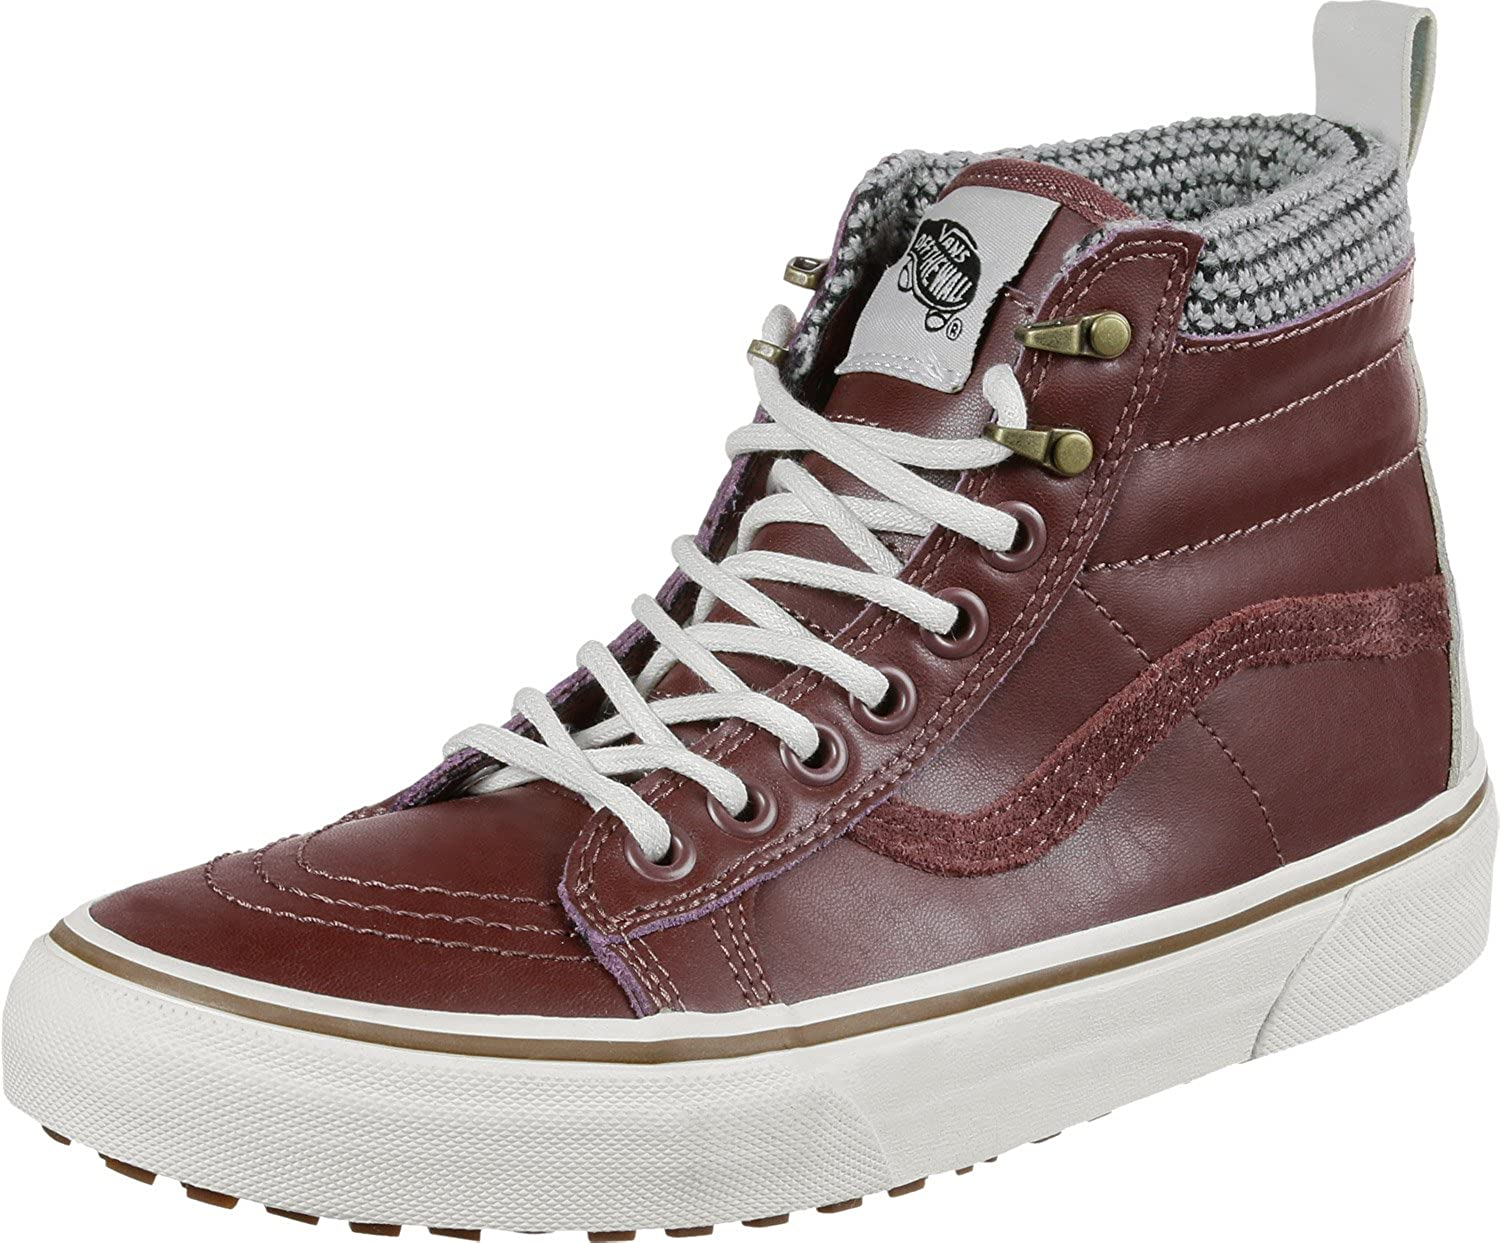 Vans Sk8-hi MTE, Unisex Adults' Hi-Top Sneakers